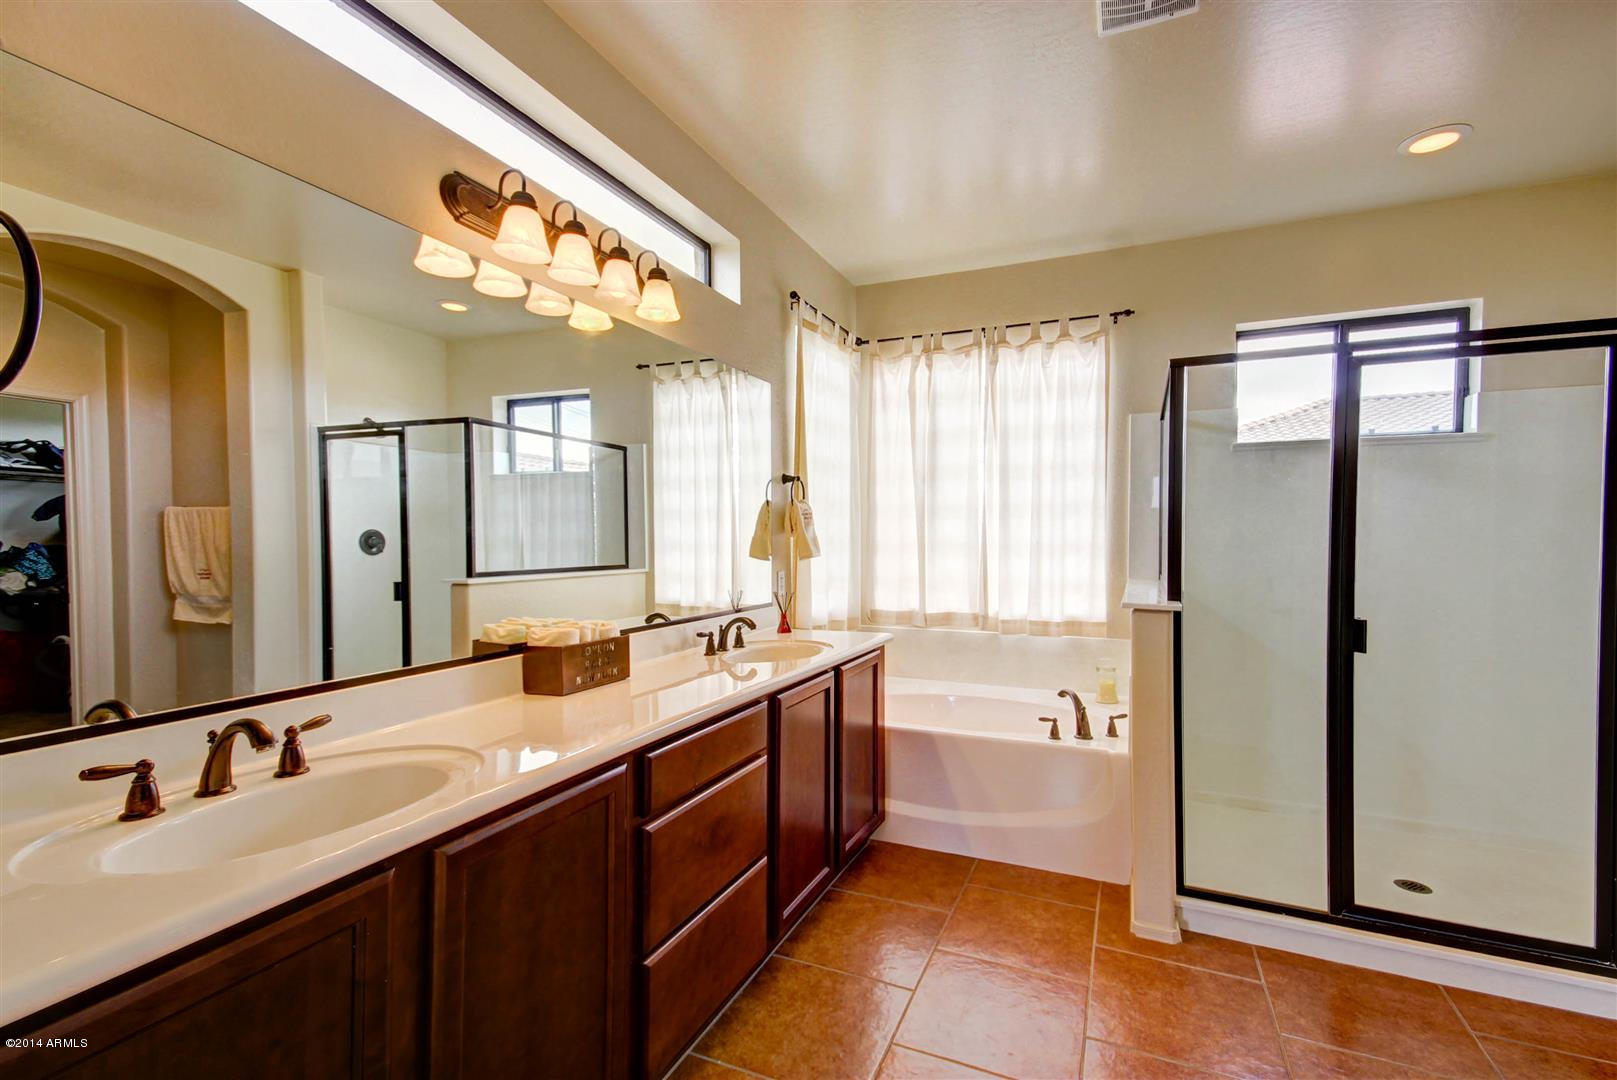 to handle shower walls and tiles and sop water from shower curtains